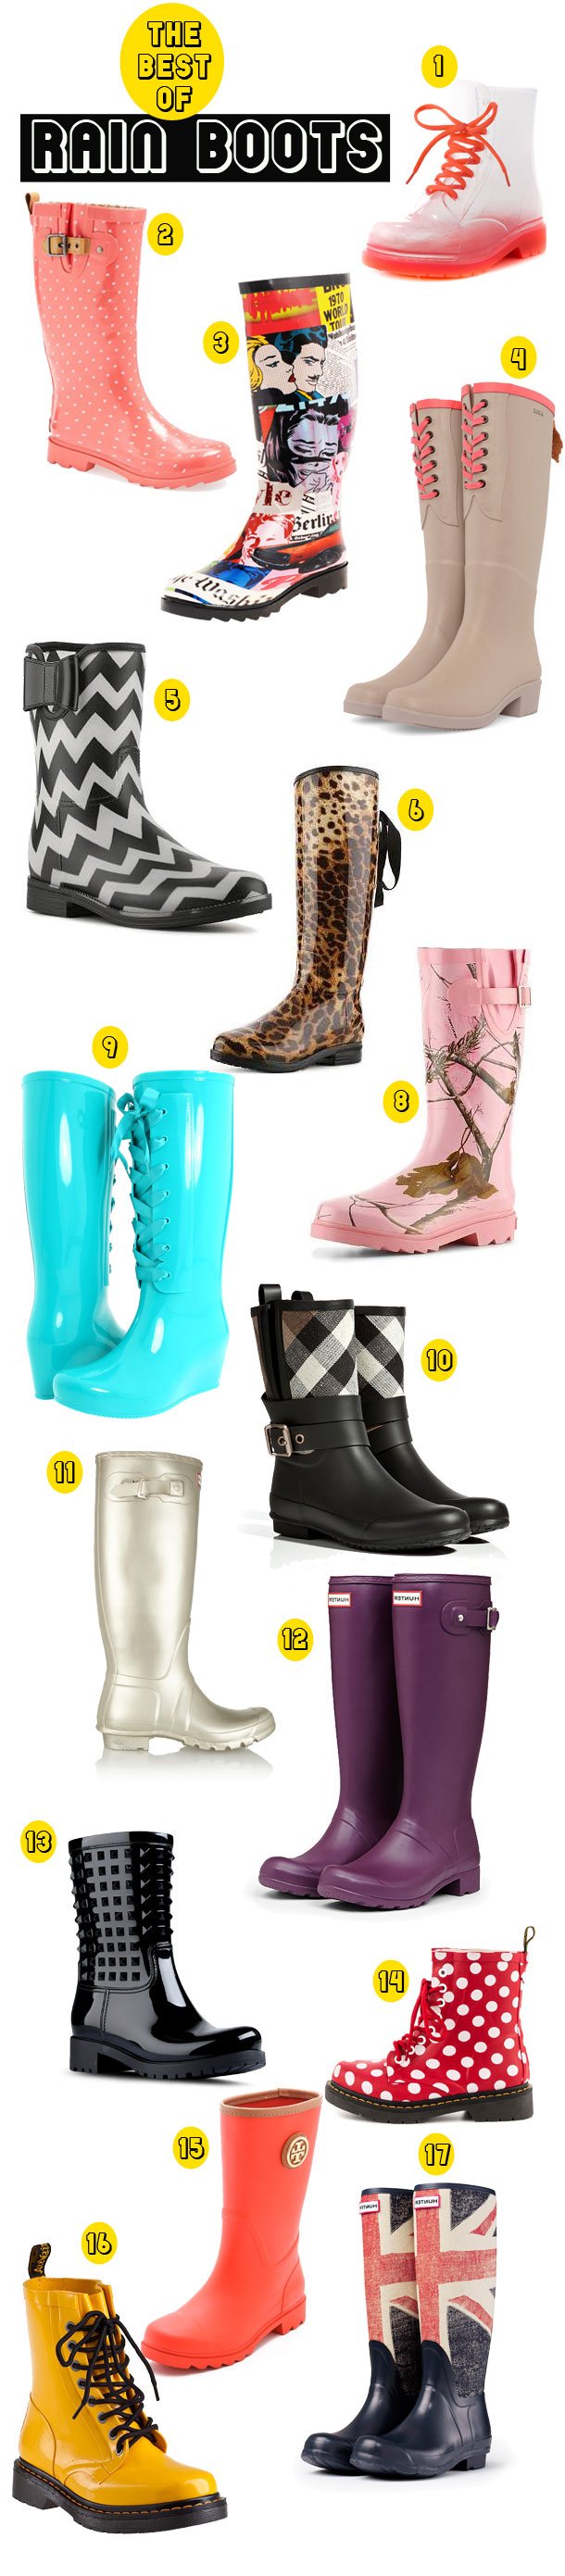 best-of-rain-boots-wellies